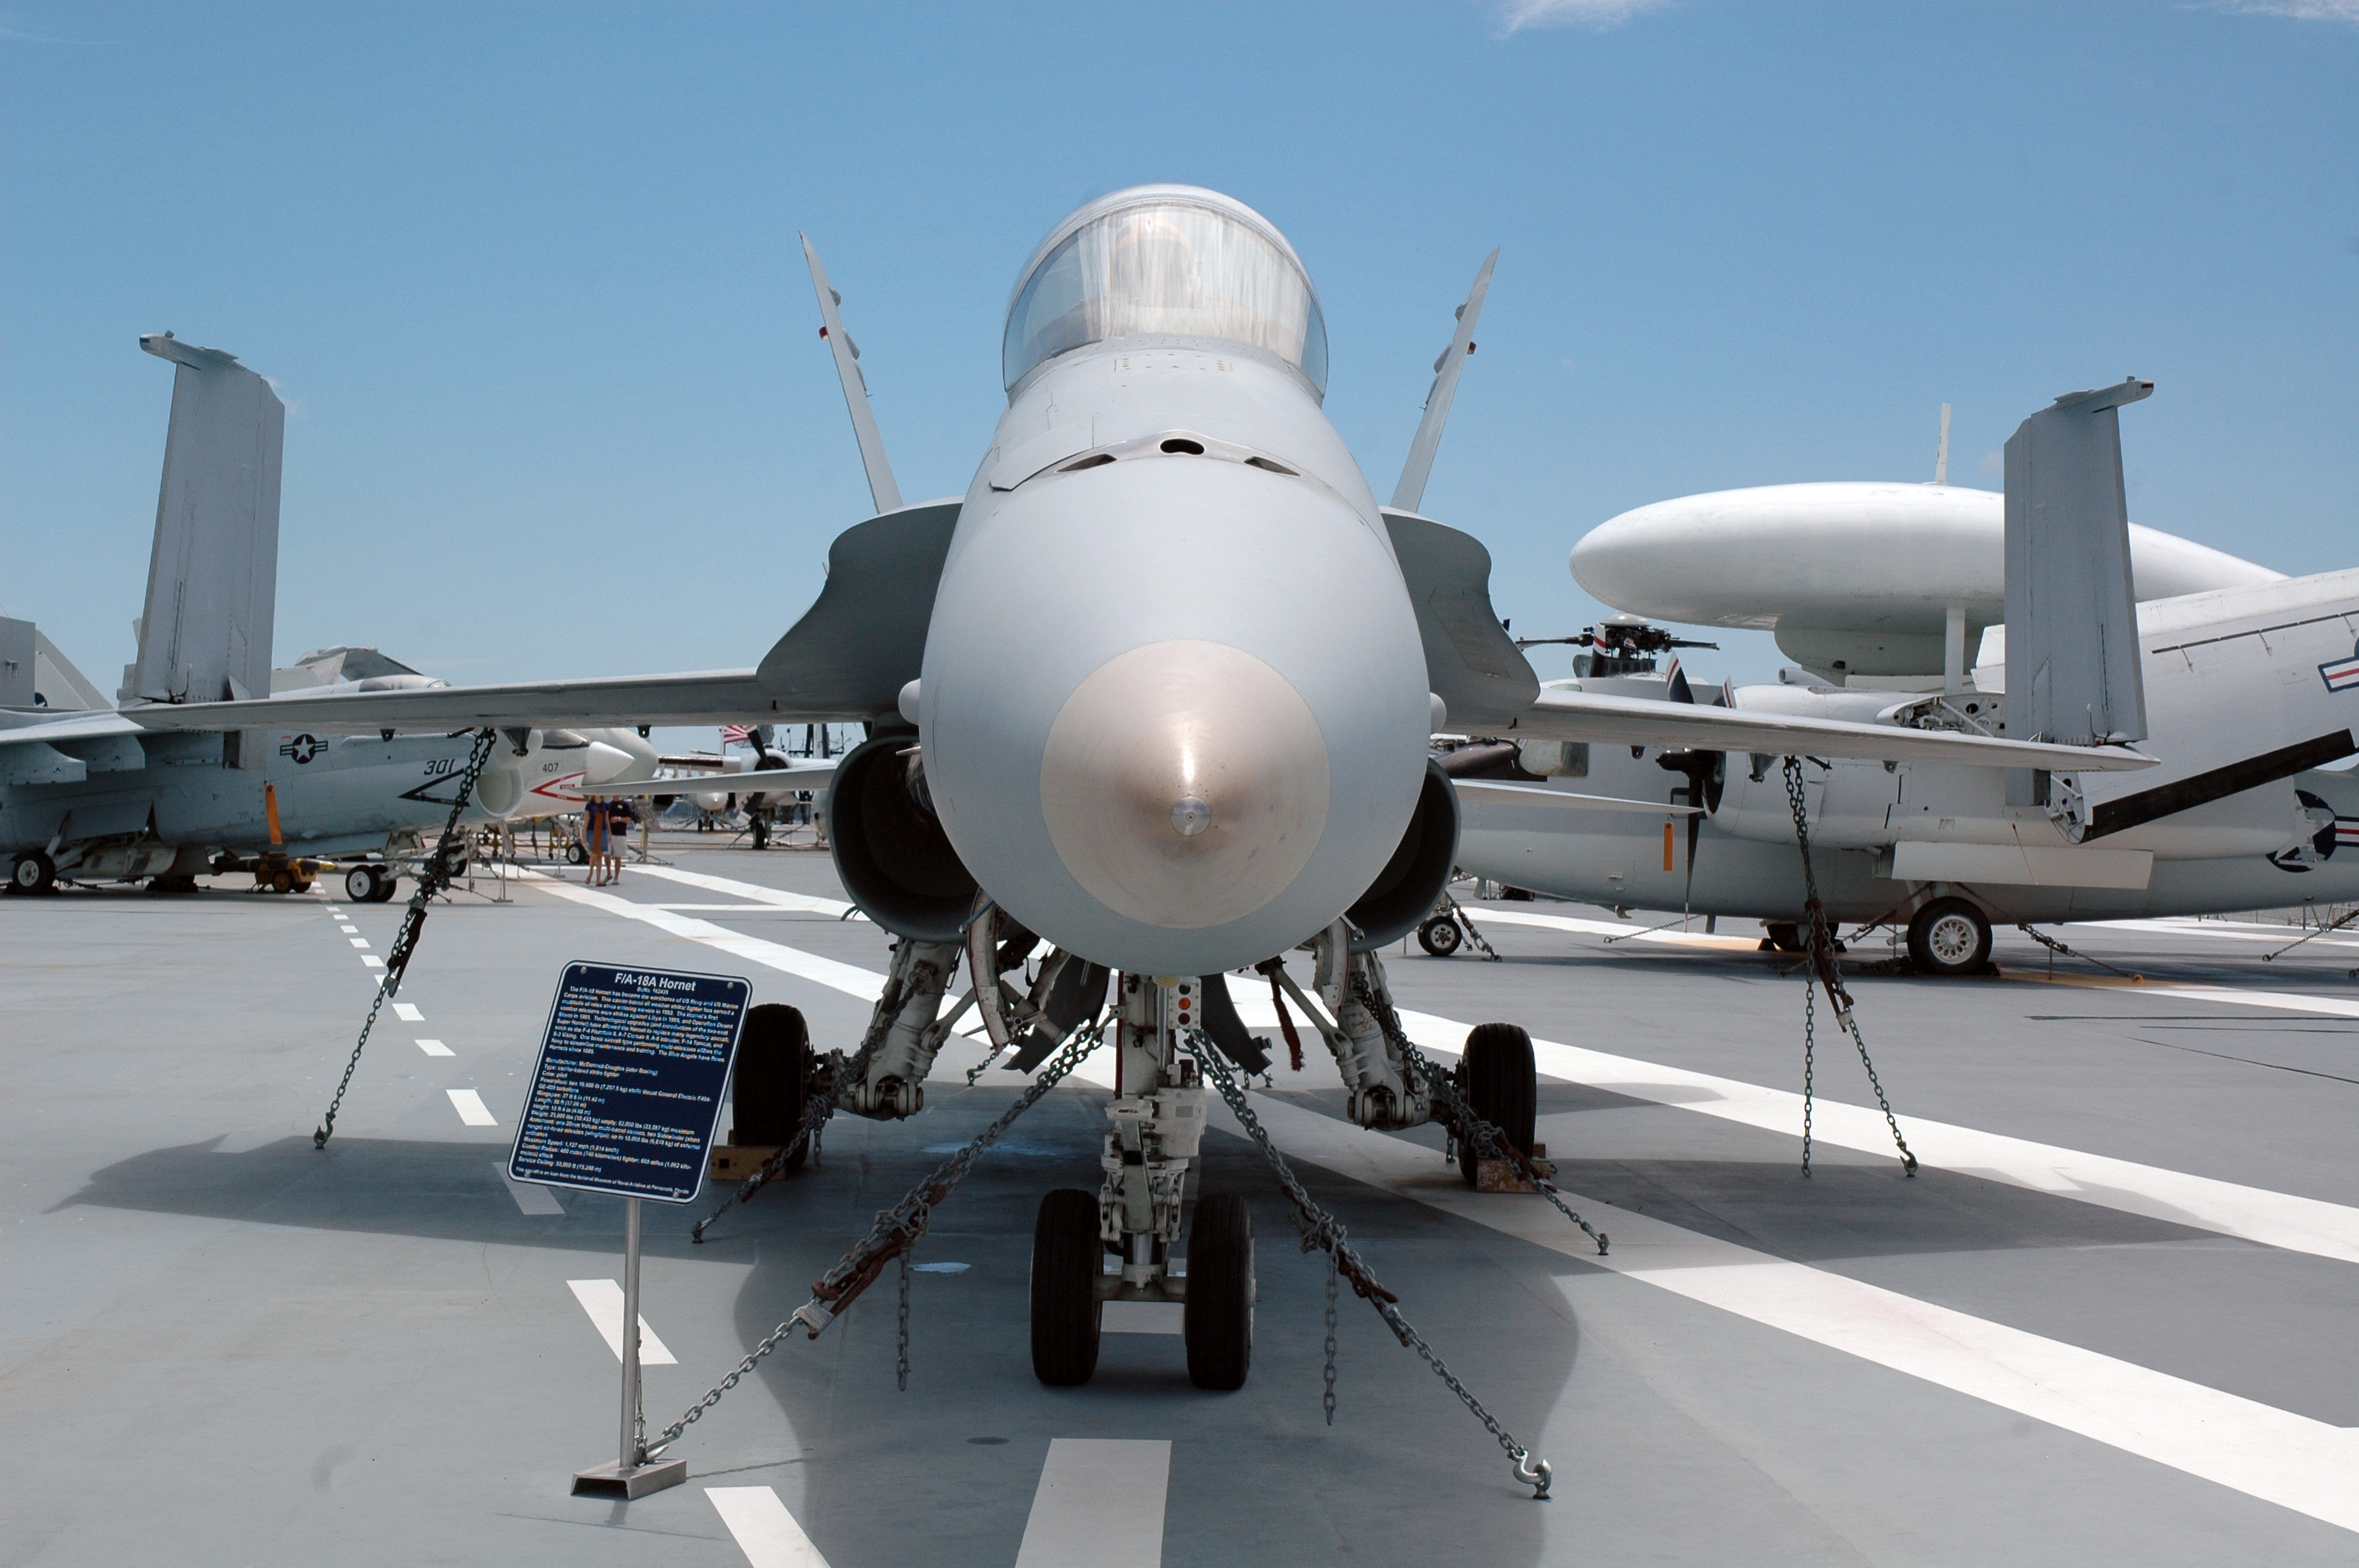 The F-18 Hornet will be open for visitors to check out!